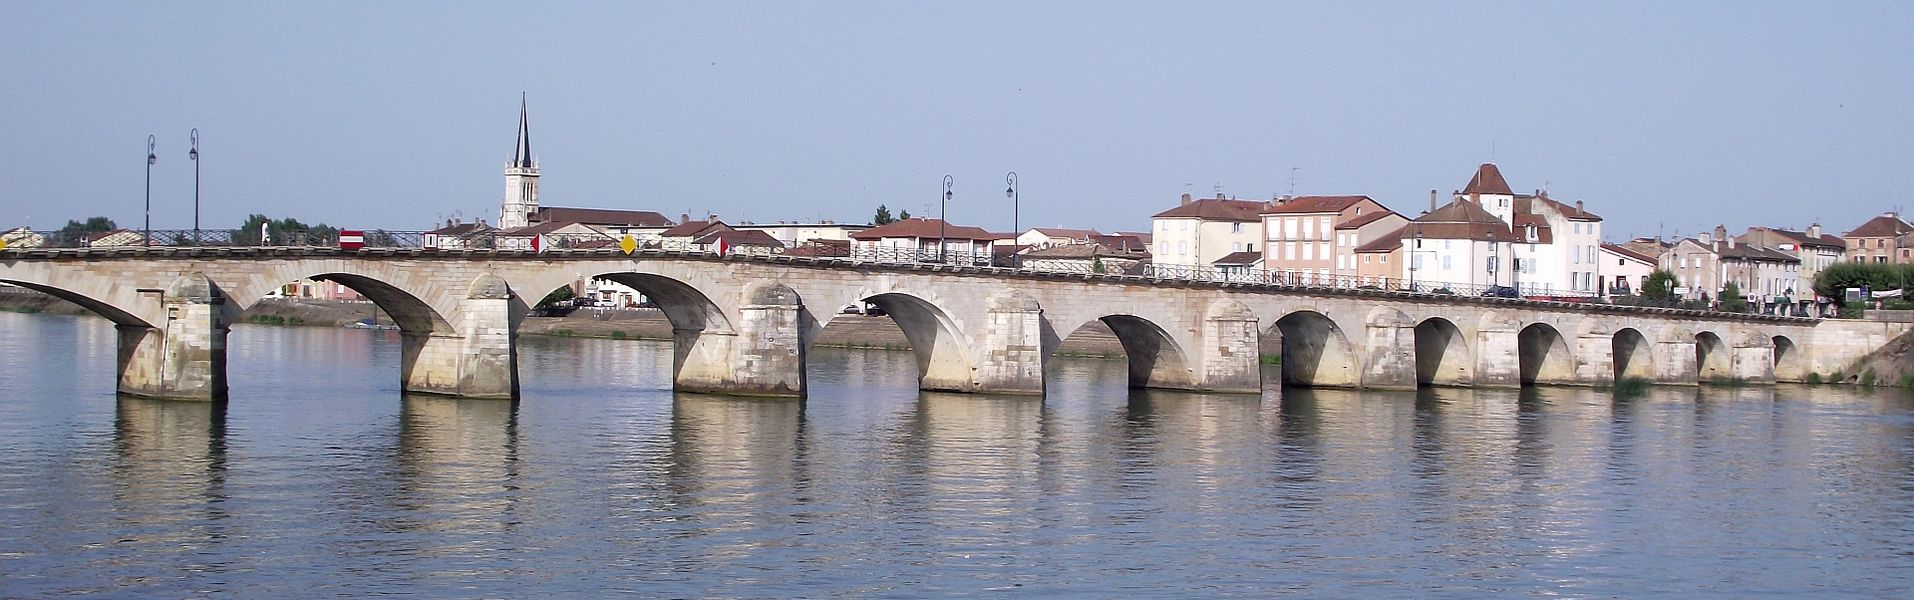 Pont Saint-Laurent - Mâcon